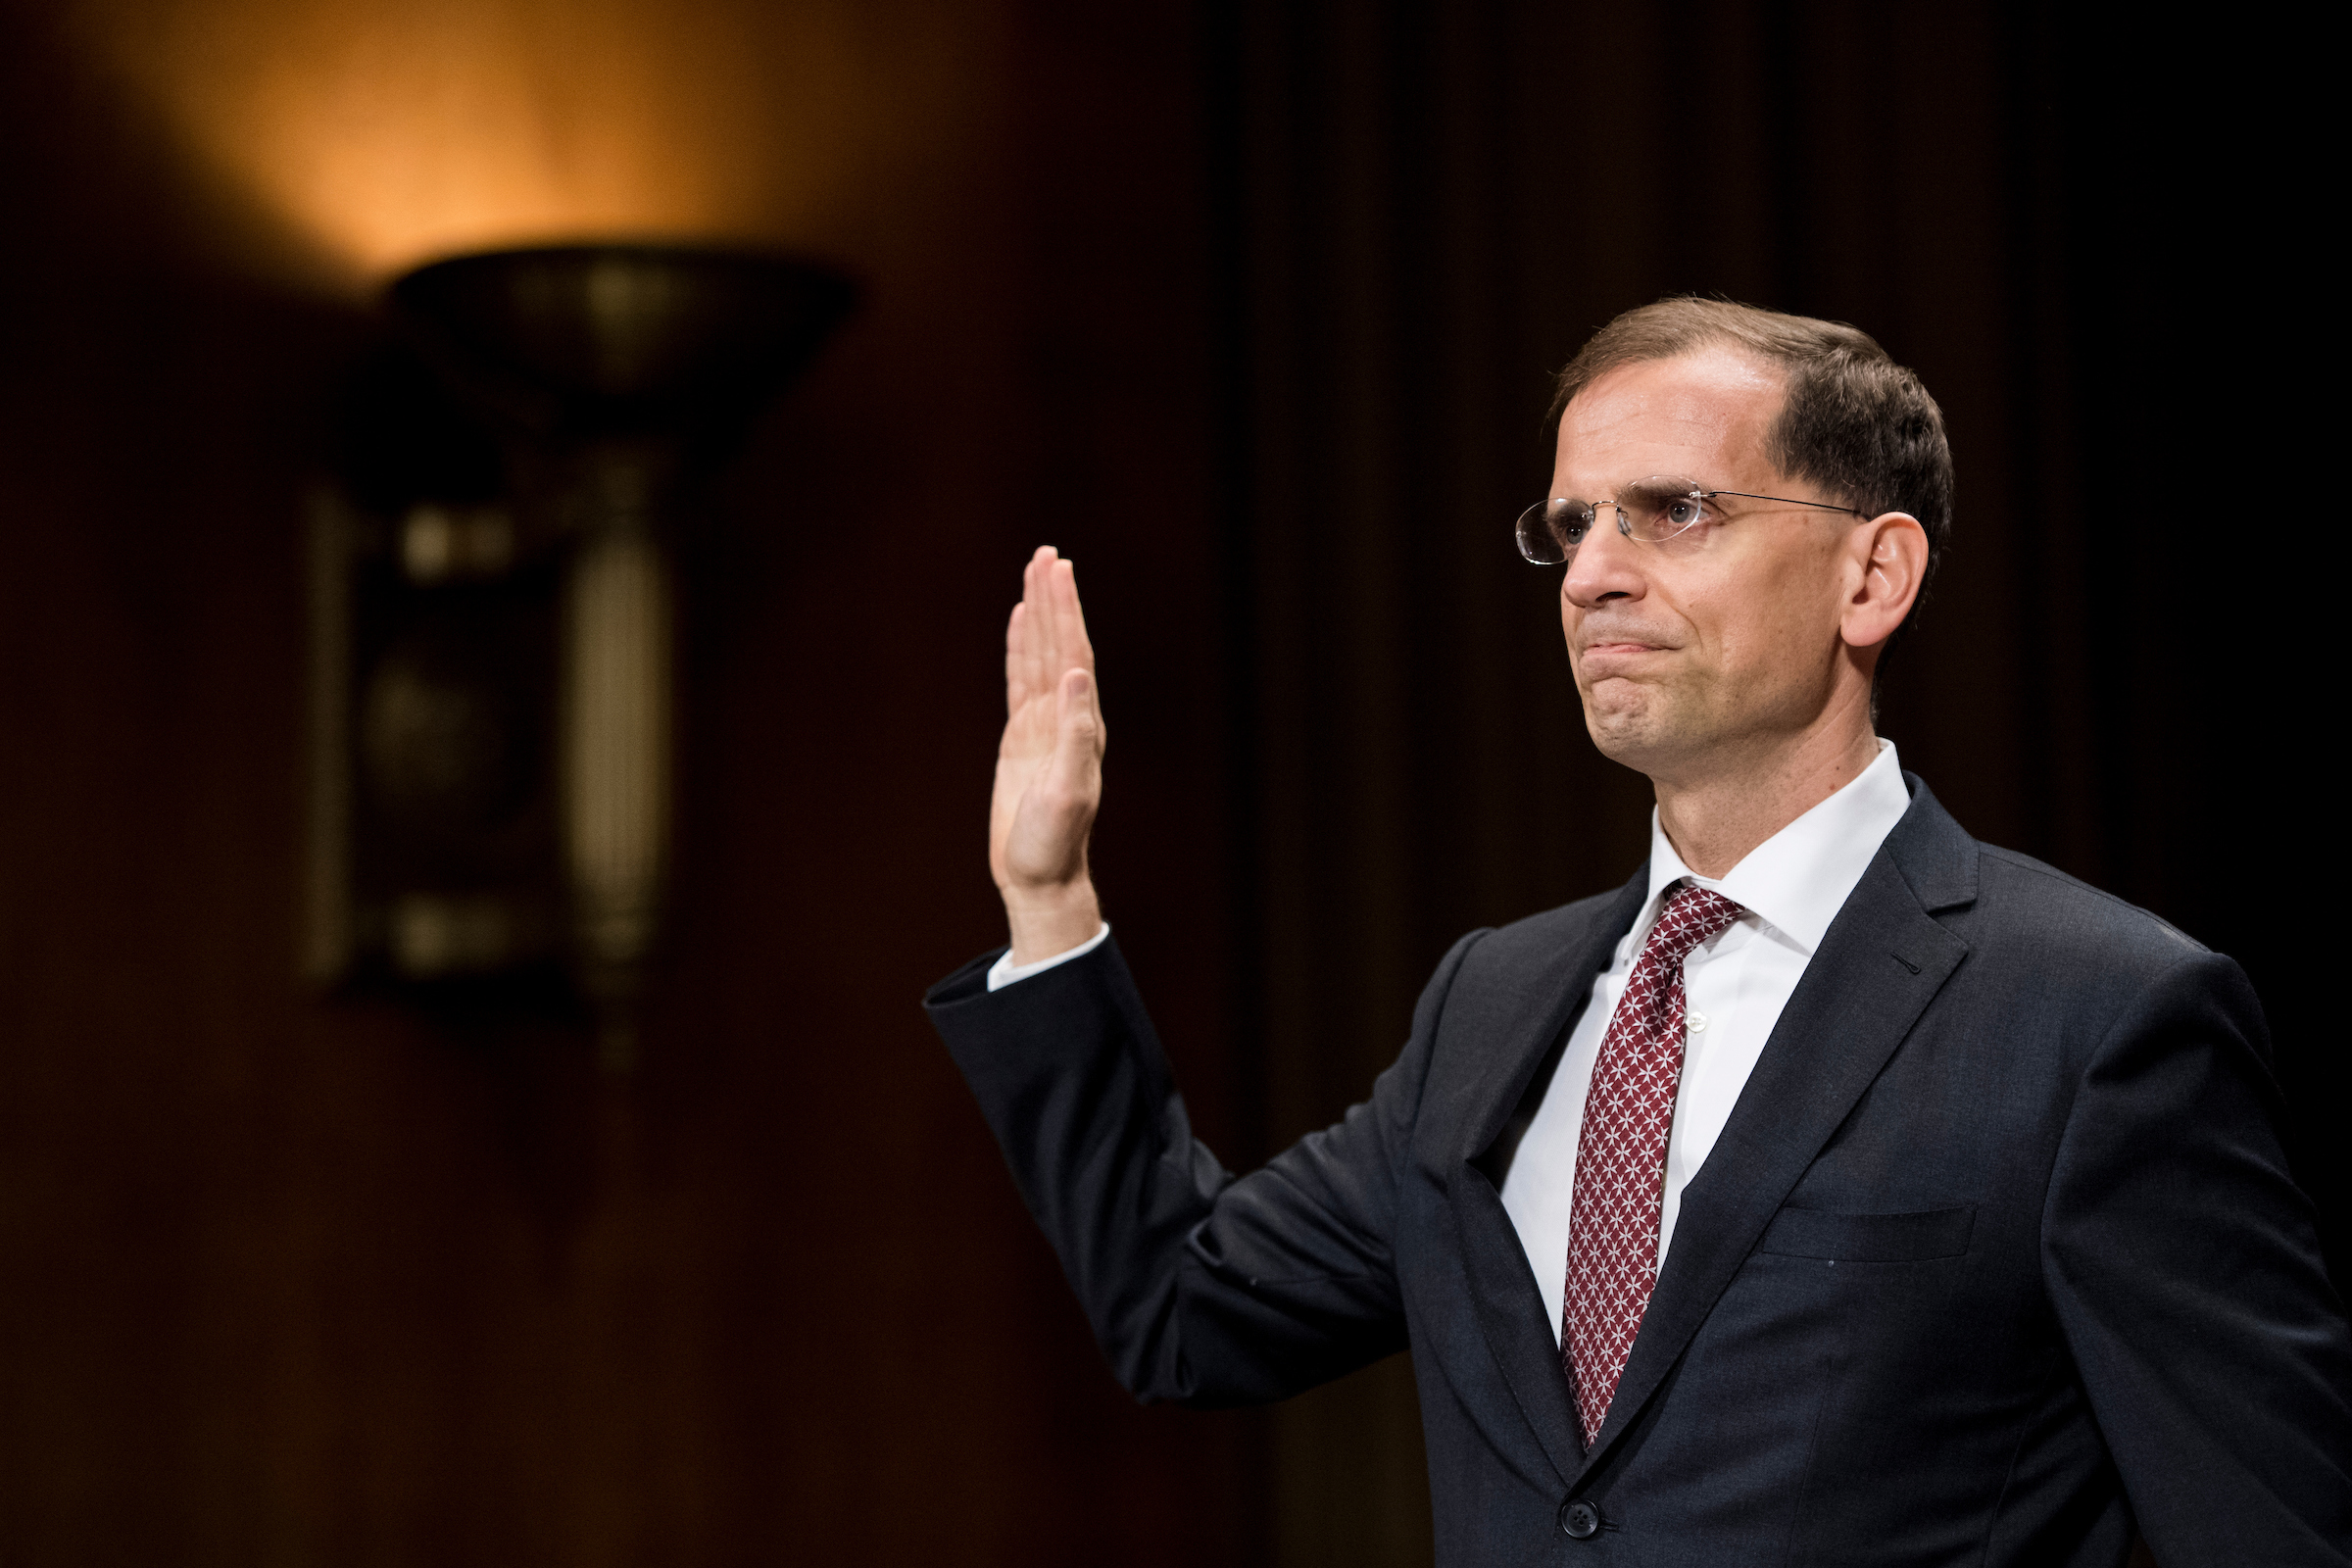 Gregory Katsas, nominee to be United States Circuit Judge for the District of Columbia Circuit, is sworn in during his confirmation hearing in the Senate Judiciary Committee on Tuesday, Oct. 17, 2017. (Bill Clark/CQ Roll Call)